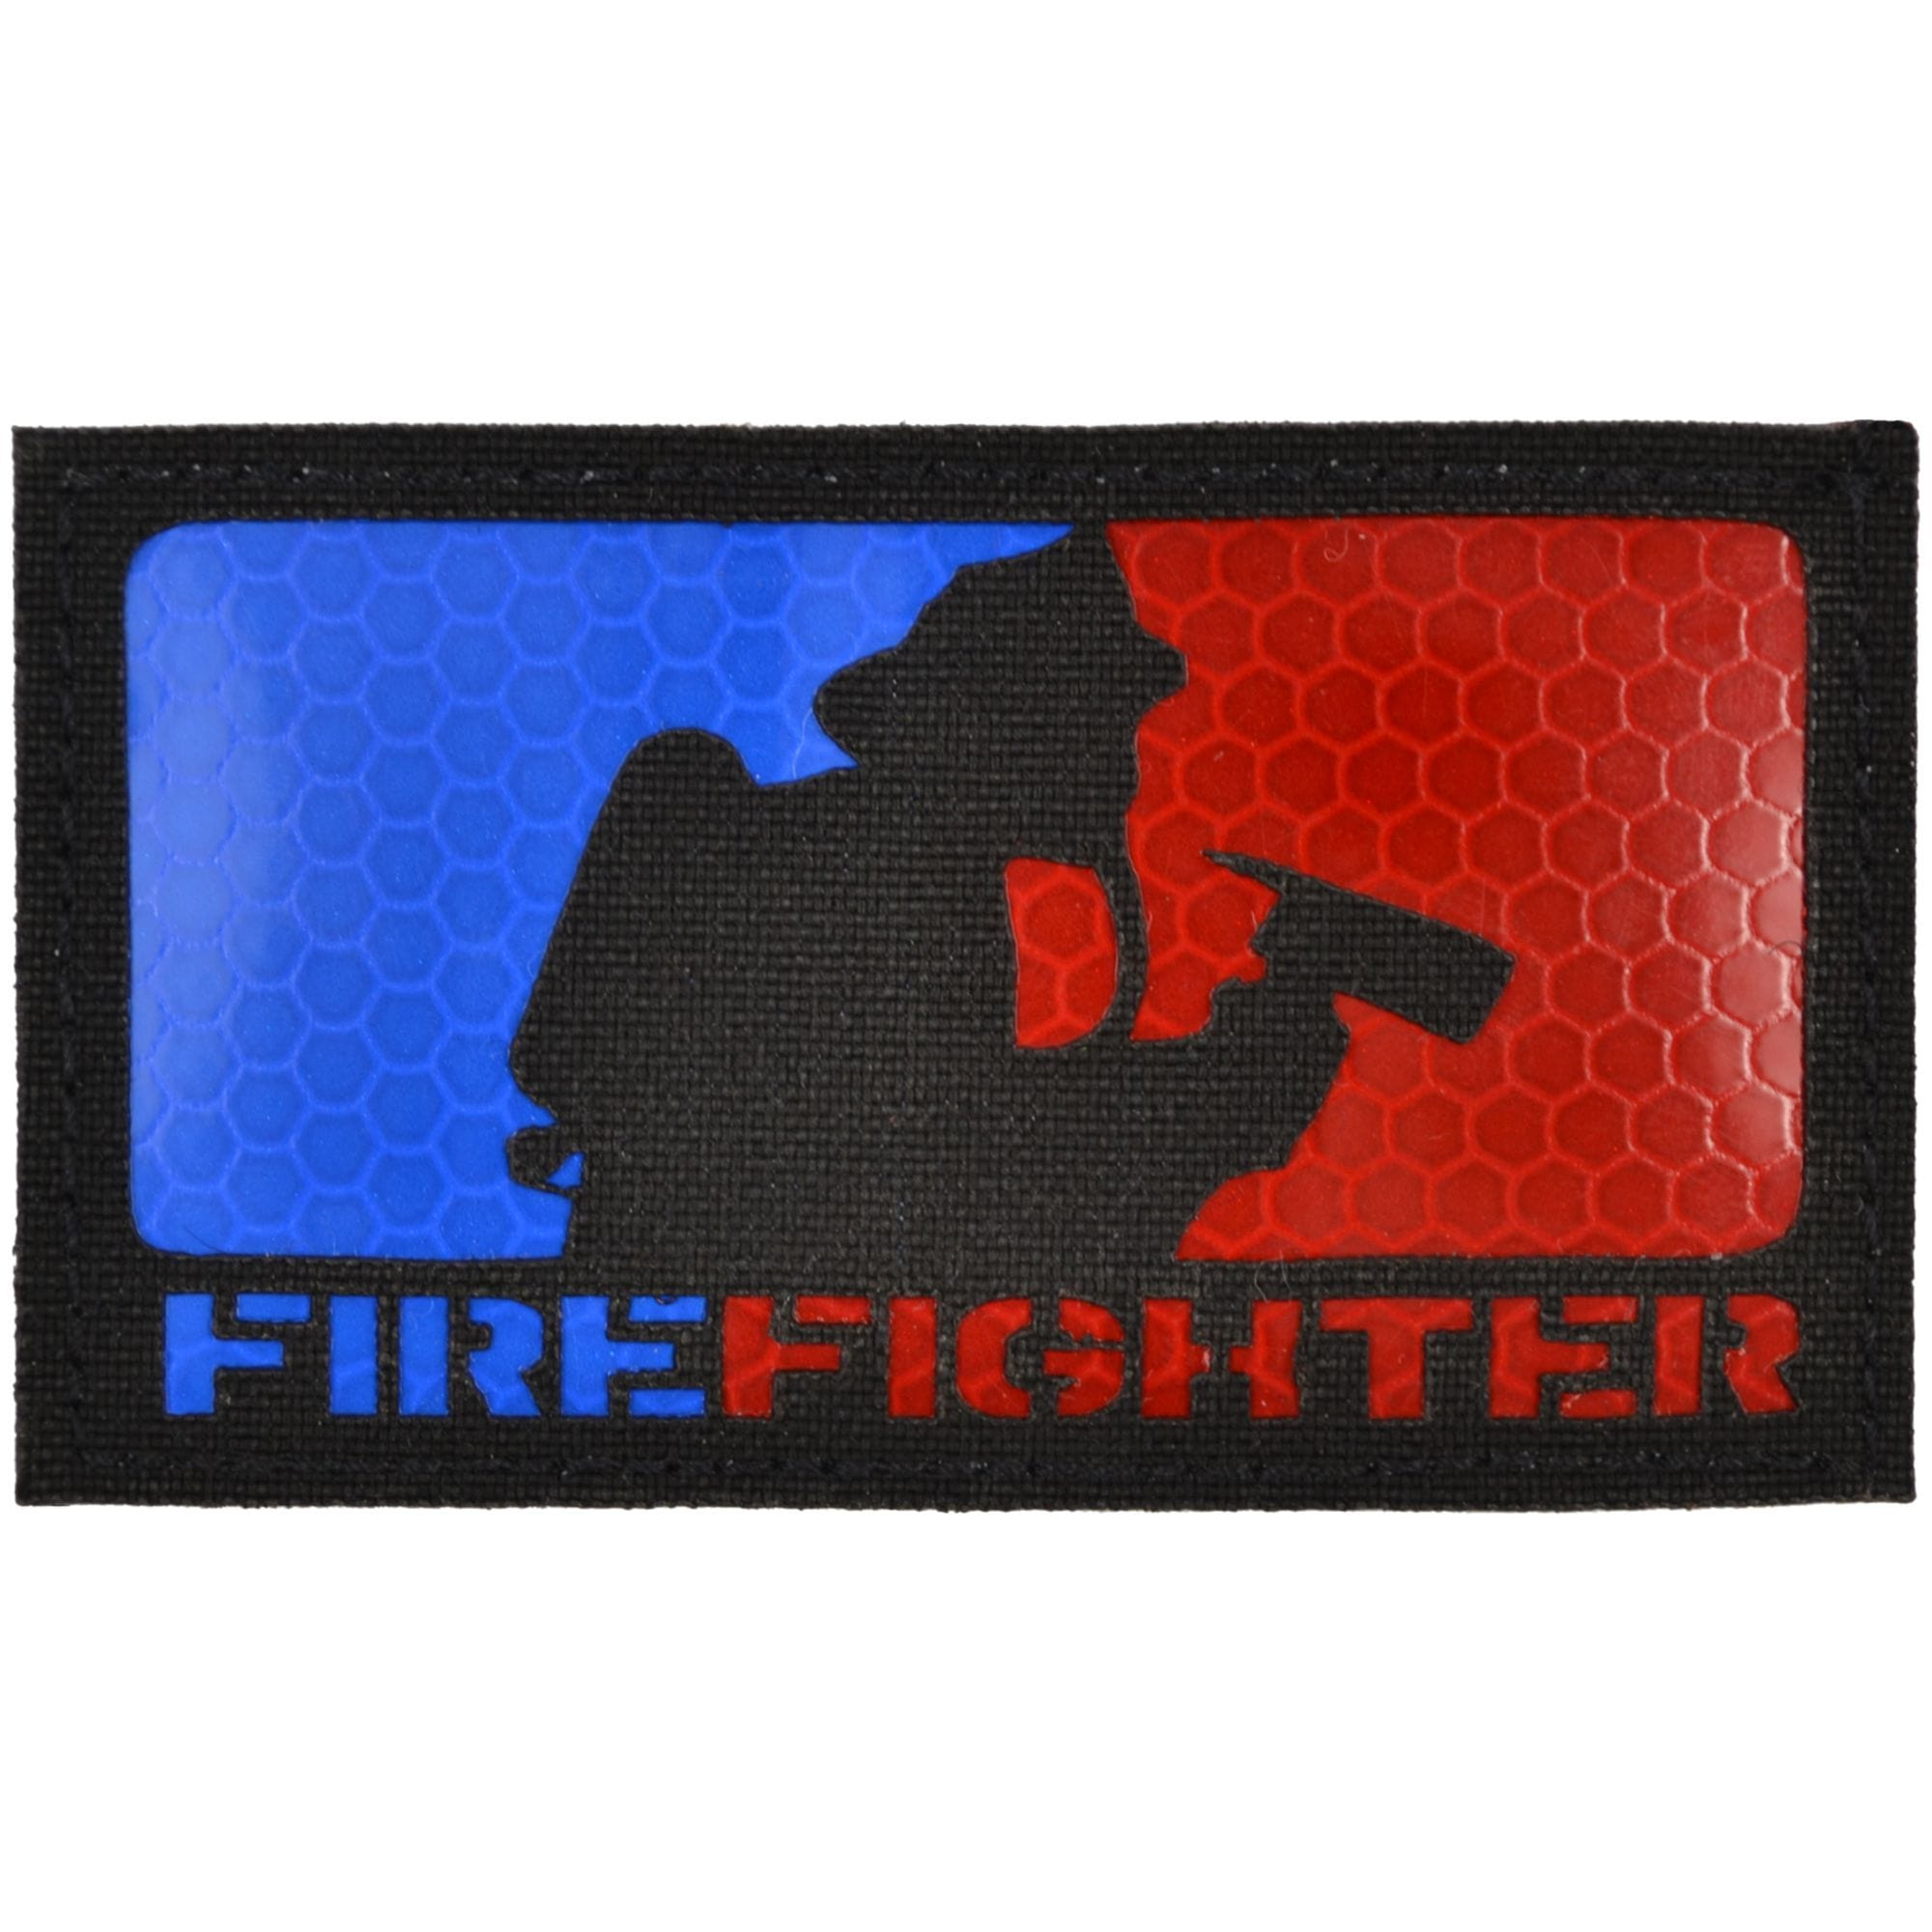 Firefighter Laser Cut Reflective - 2x3.5 CORDURA® Patch